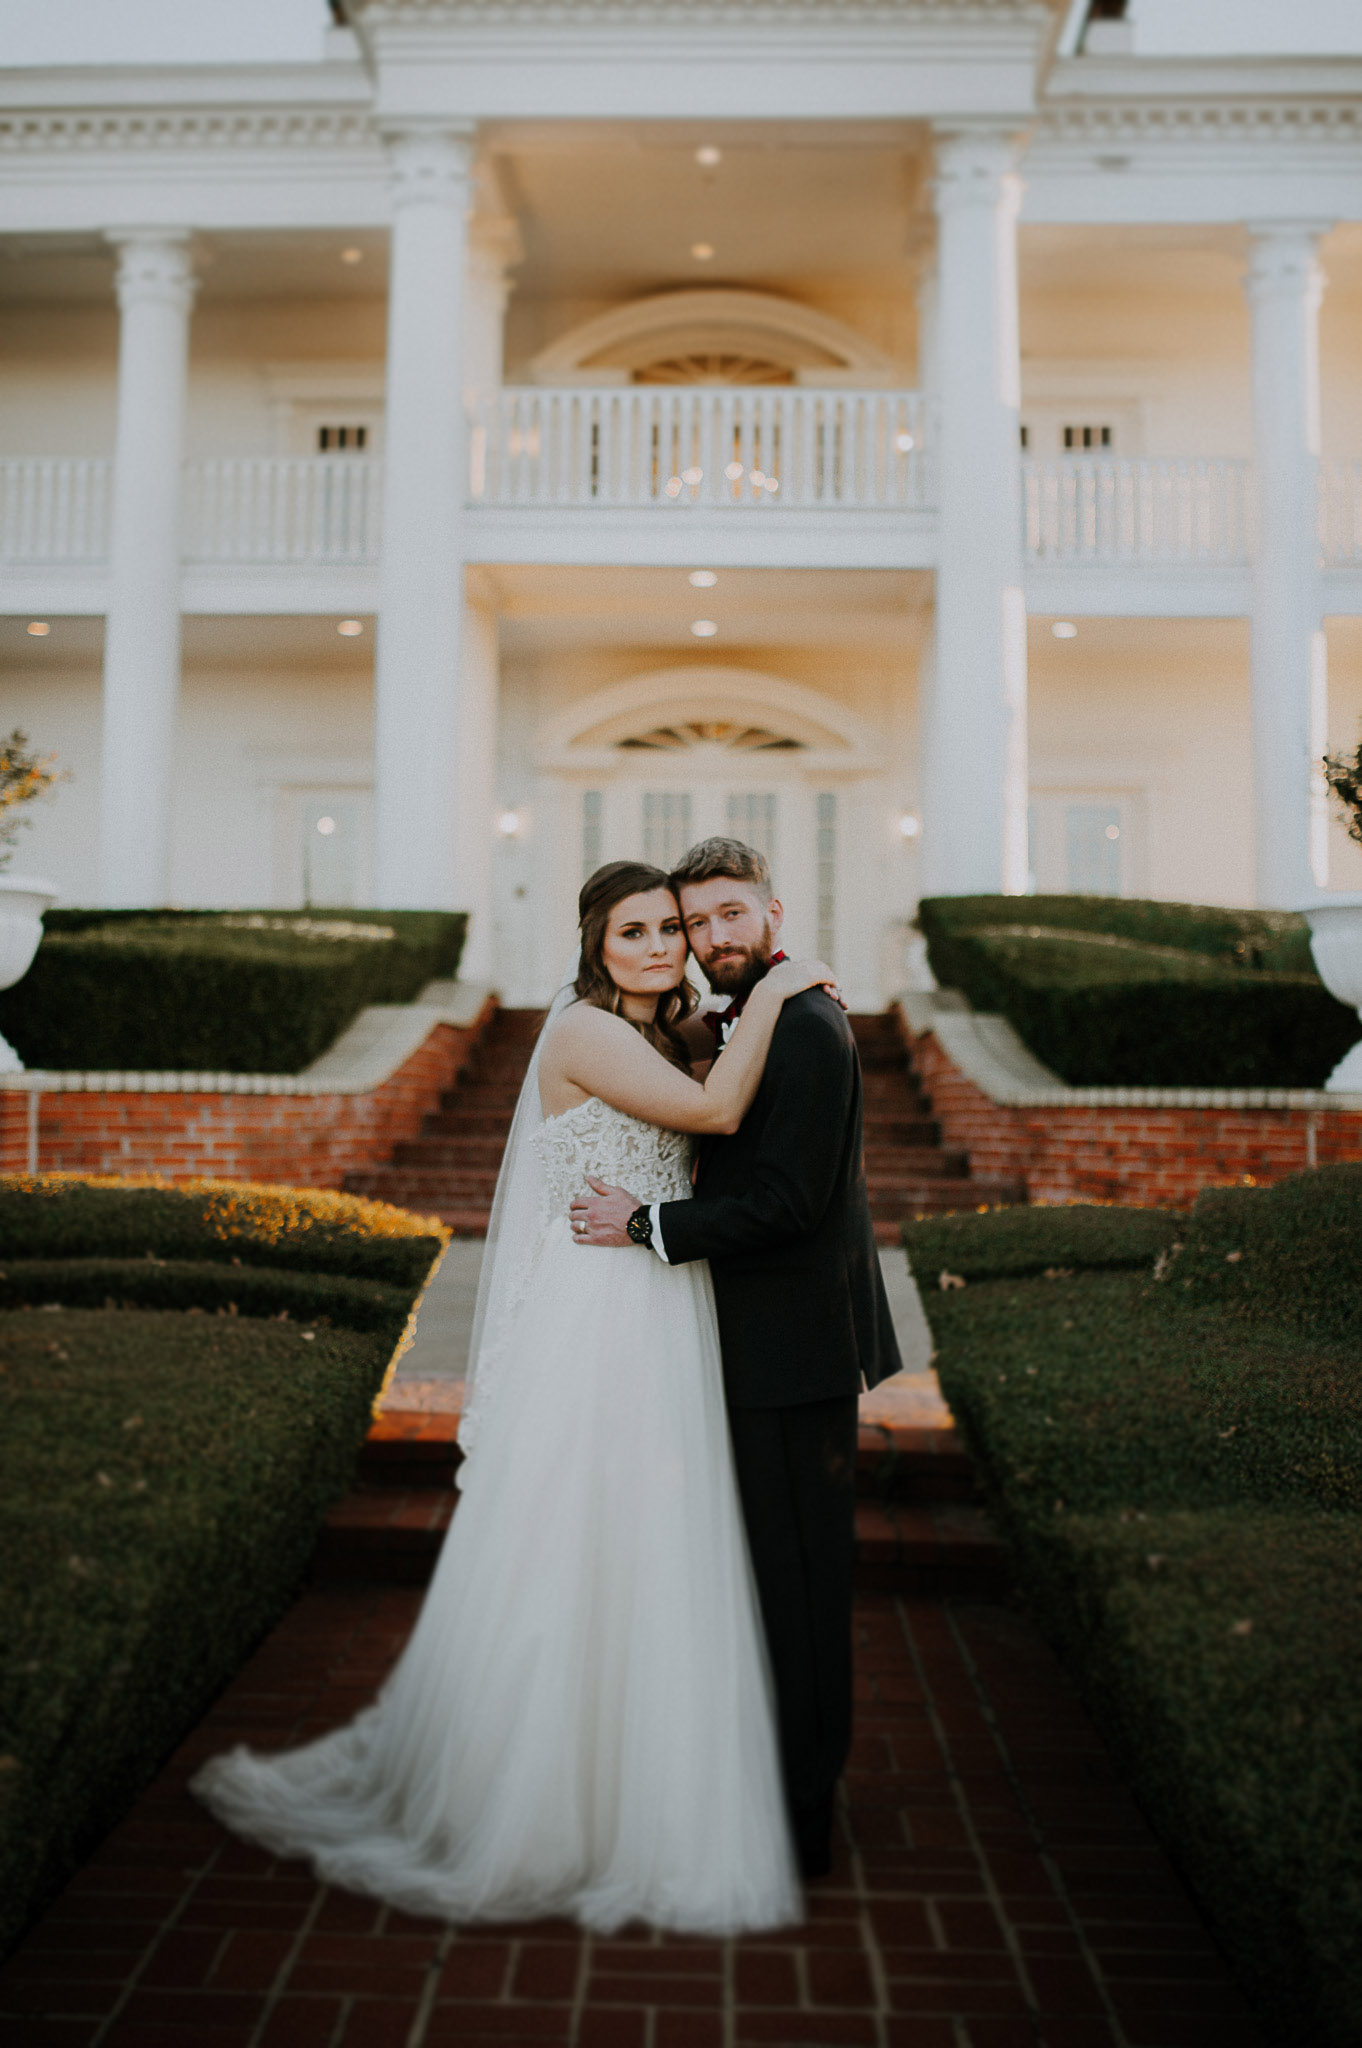 Dallas_Fort_Worth_wedding_Photographer_lone_star_mansion_burleson_texas_104